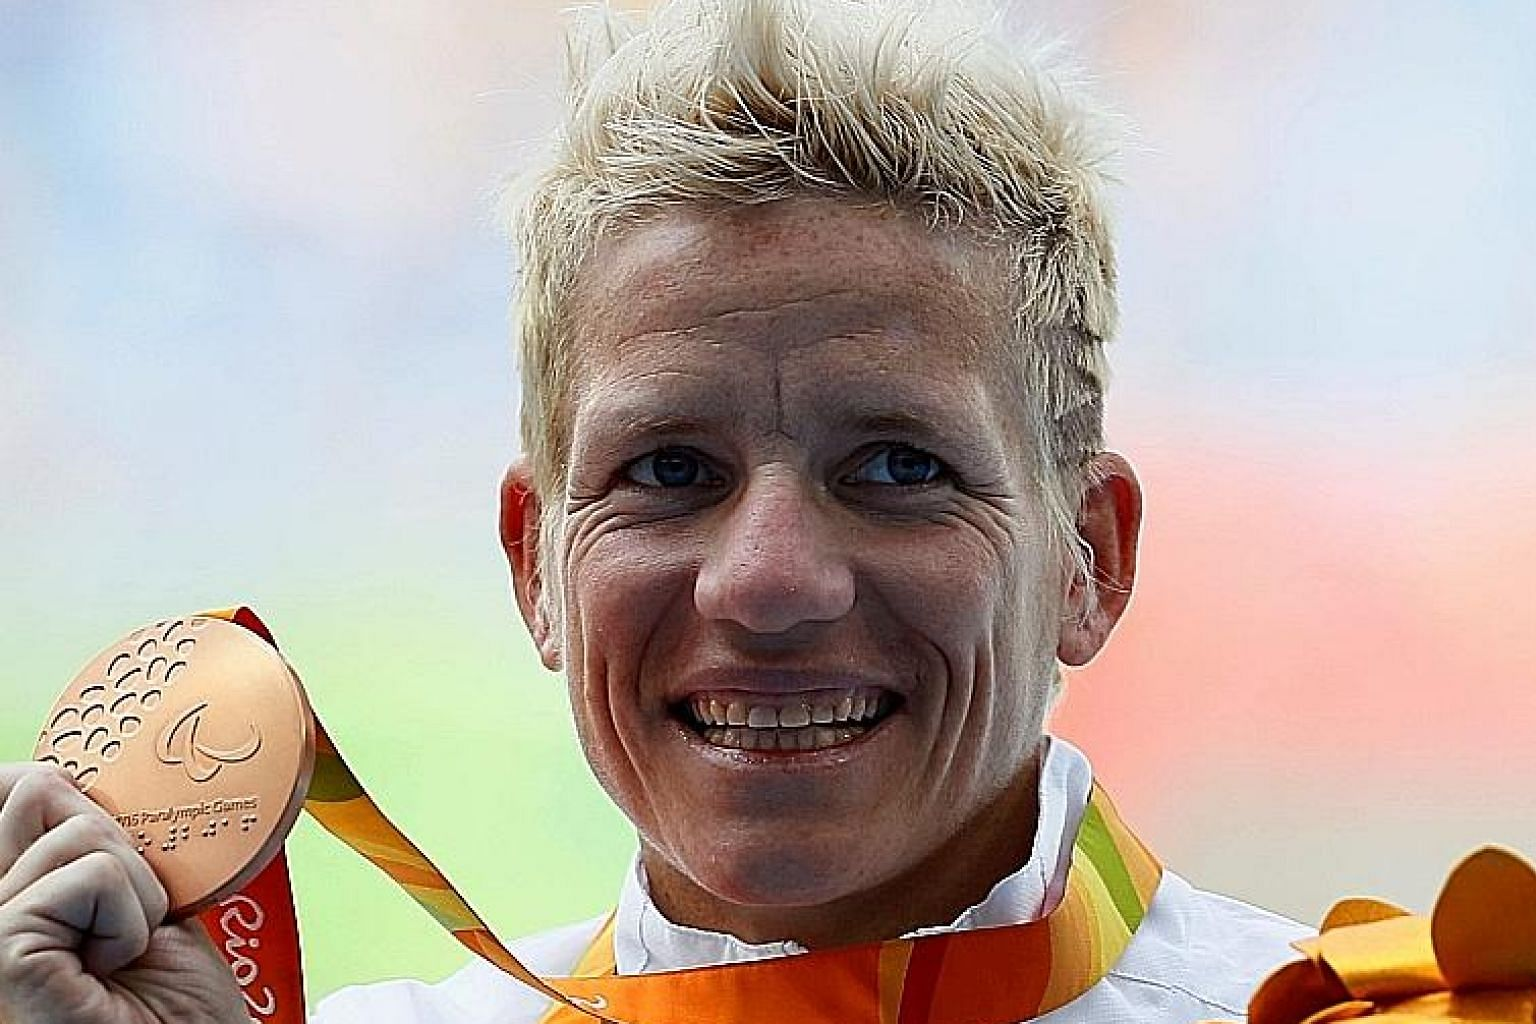 Marieke Vervoort had signed the euthanasia papers in 2008. She retired after the 2016 Rio Paralympics.